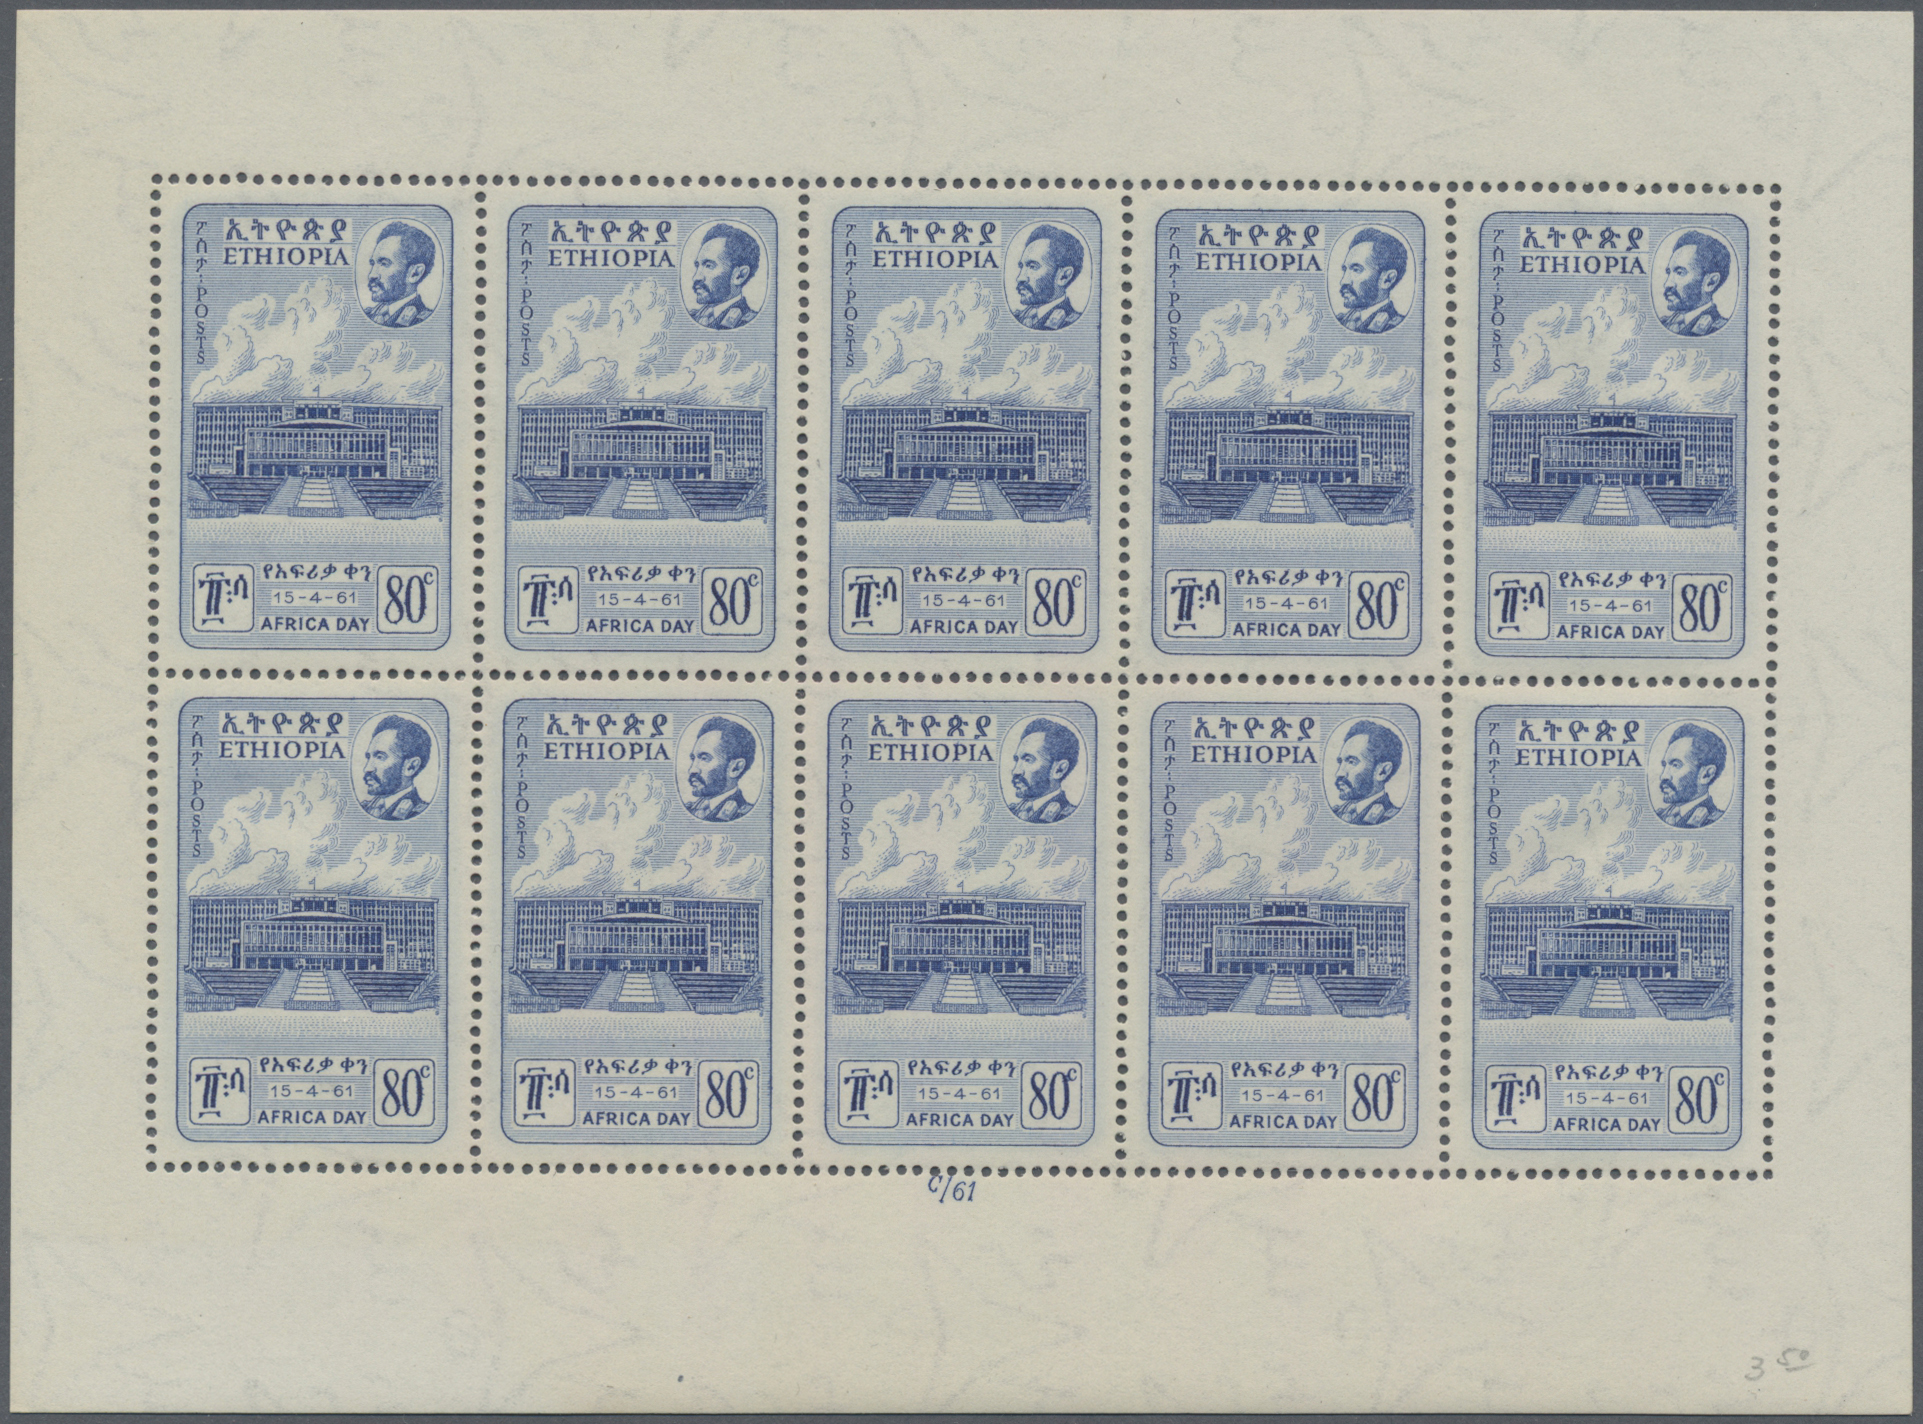 Lot 26359 - nachlässe  -  Auktionshaus Christoph Gärtner GmbH & Co. KG Sale #46 Gollcetions Germany - including the suplement